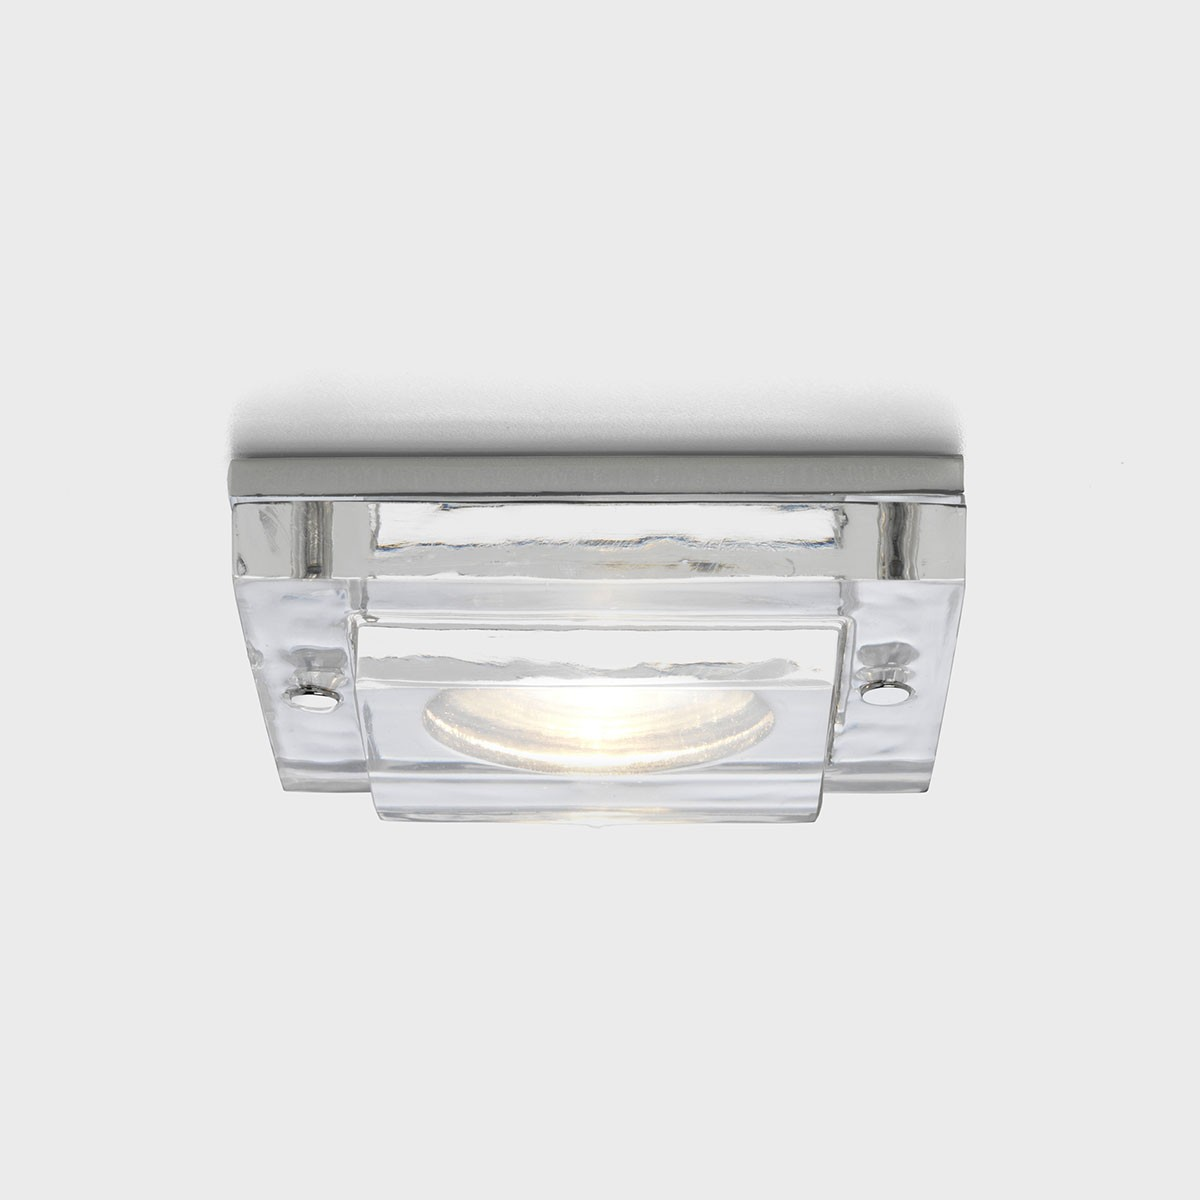 Astro Mint Square MR16 Polished Chrome Fire Rated Bathroom Downlight